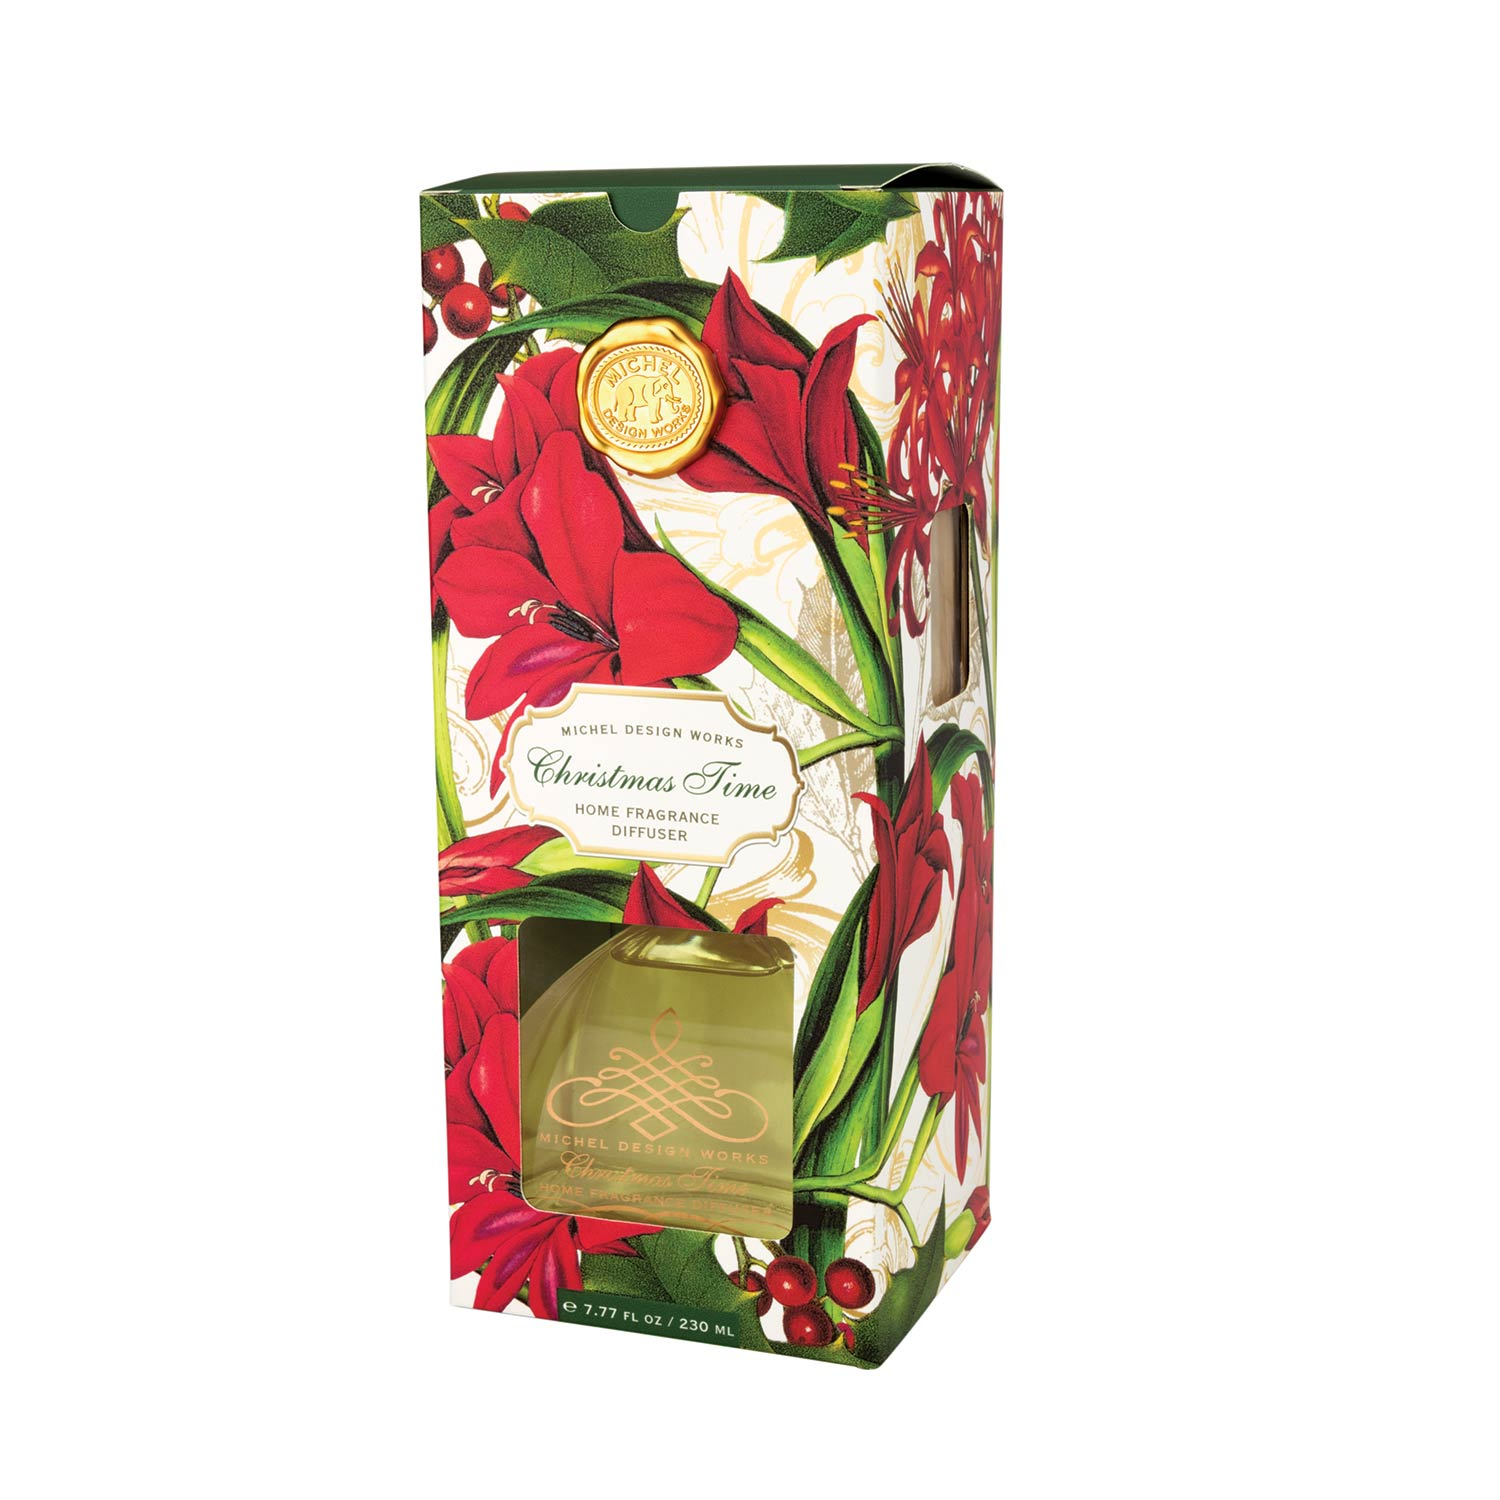 Christmas Time Home Fragrance Diffuser